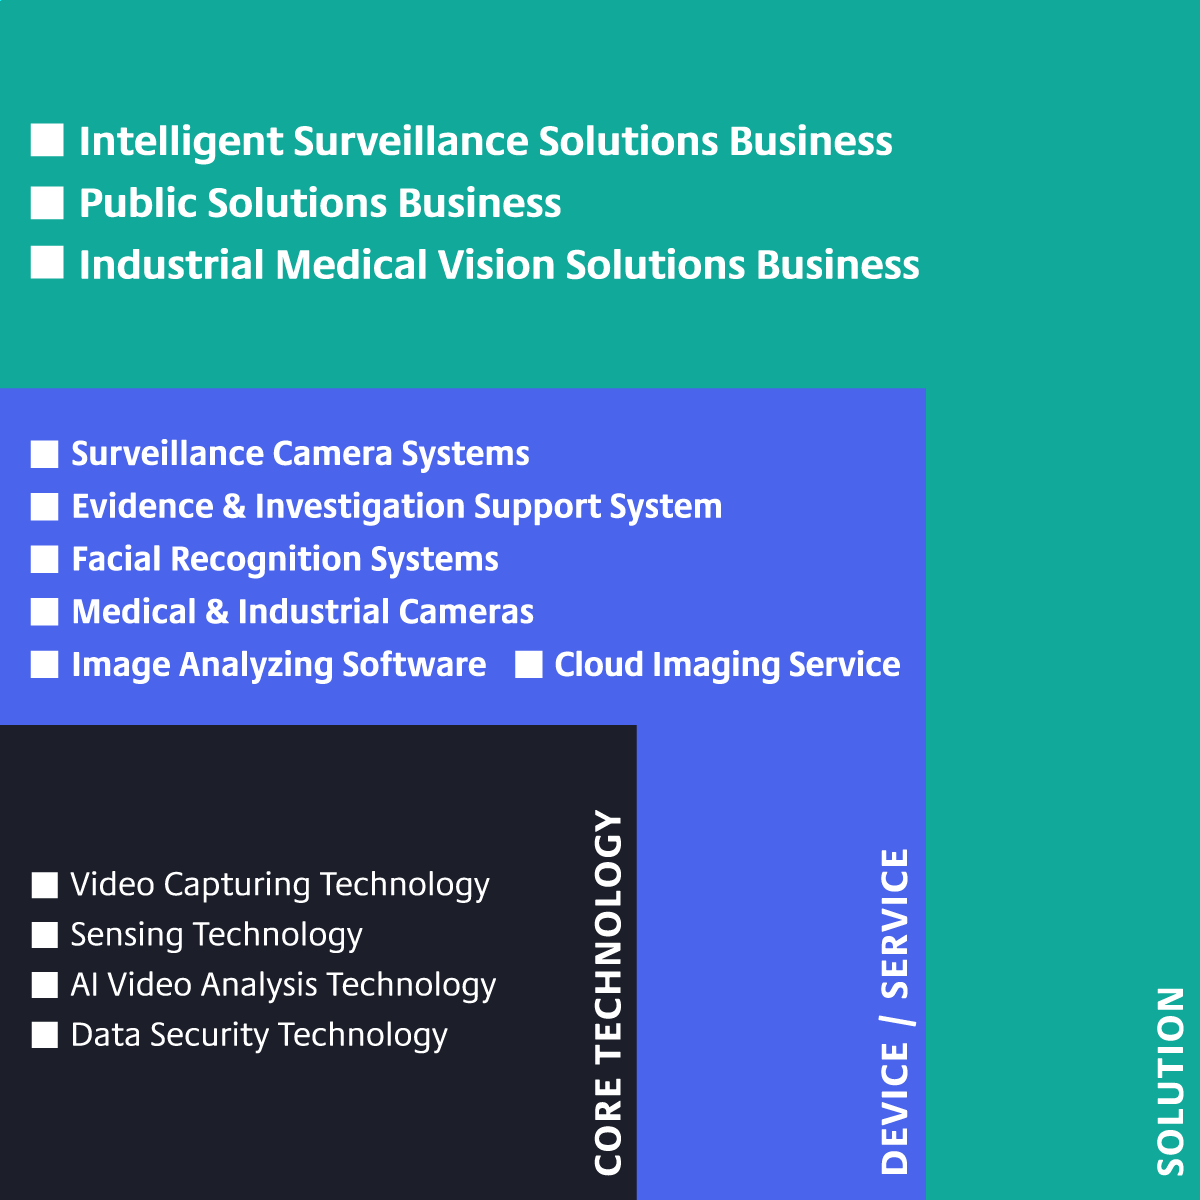 """Based on core technologies such as """"Video Capturing Technology, Sensing Technology, AI Video Analysis Technology, and Data Security Technology,"""" we develop devices and services such as """"Surveillance Camera Systems, Evidence & Investigation Support System, Facial Recognition Systems, Medical & Industrial Cameras, Image Analyzing Software, and Cloud Imaging Services."""" And based on these, we provide """"Sensing Solutions, Public Solution, and Industrial Medical Vision Solutions."""